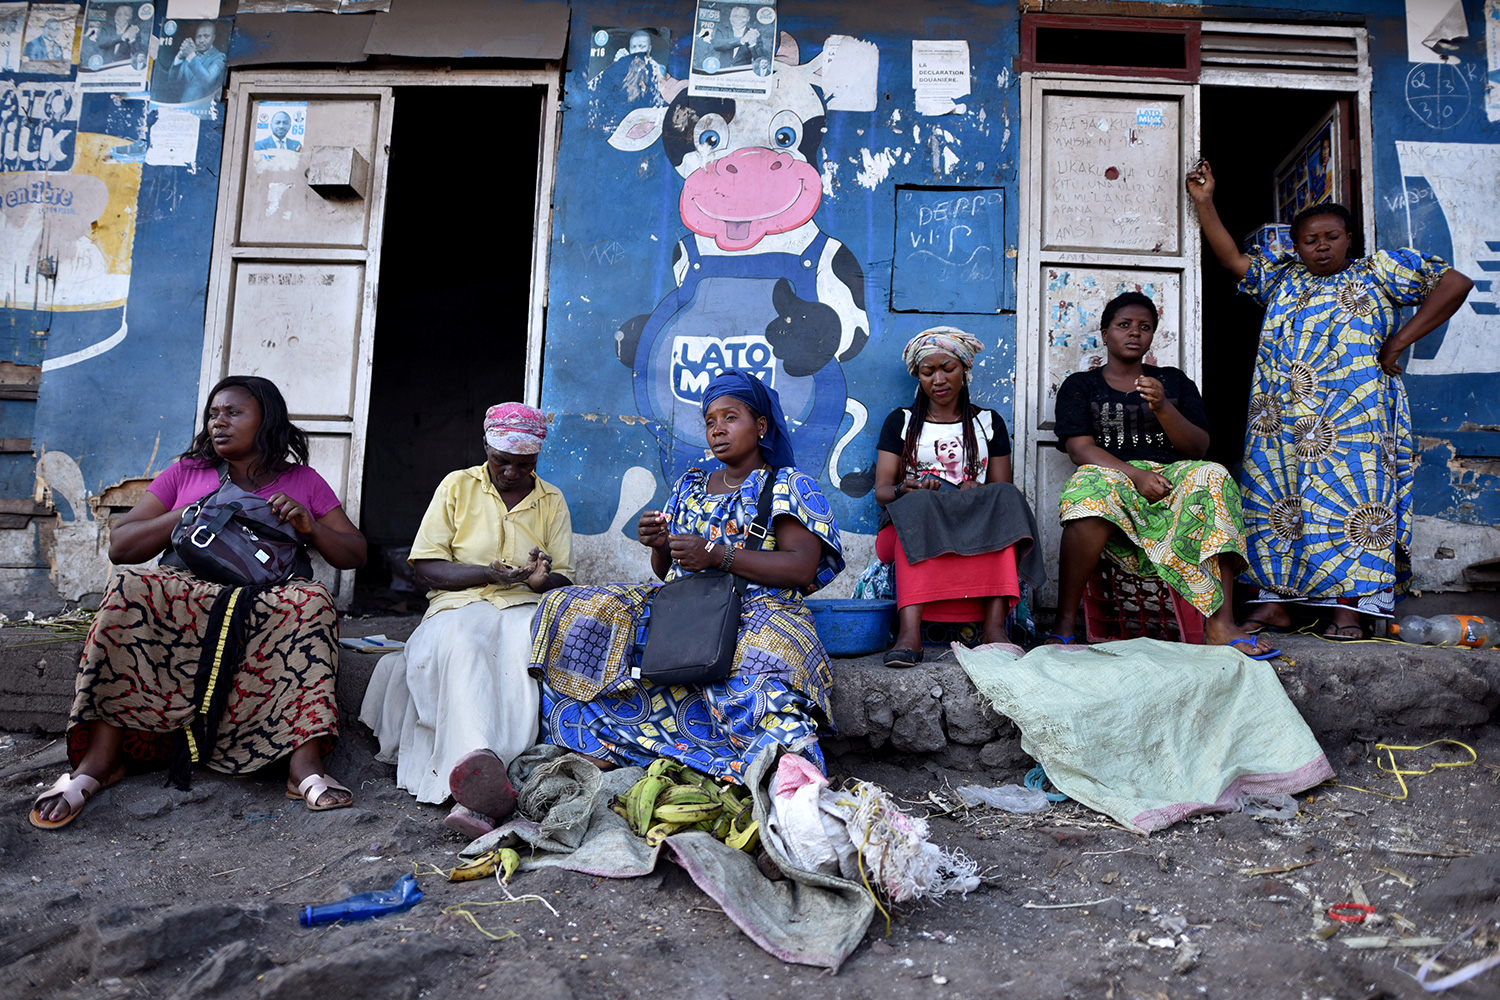 Traders sit near a deserted crossing point between Goma, Democratic Republic of Congo and Rwanda amid concerns about the spread of coronavirus on March 23, 2020. The photo shows a number of women sitting in front of a storefront painted blue and adorned by a large cartoon figure of a cow giving a thumb's up. REUTERS/Olivia Acland